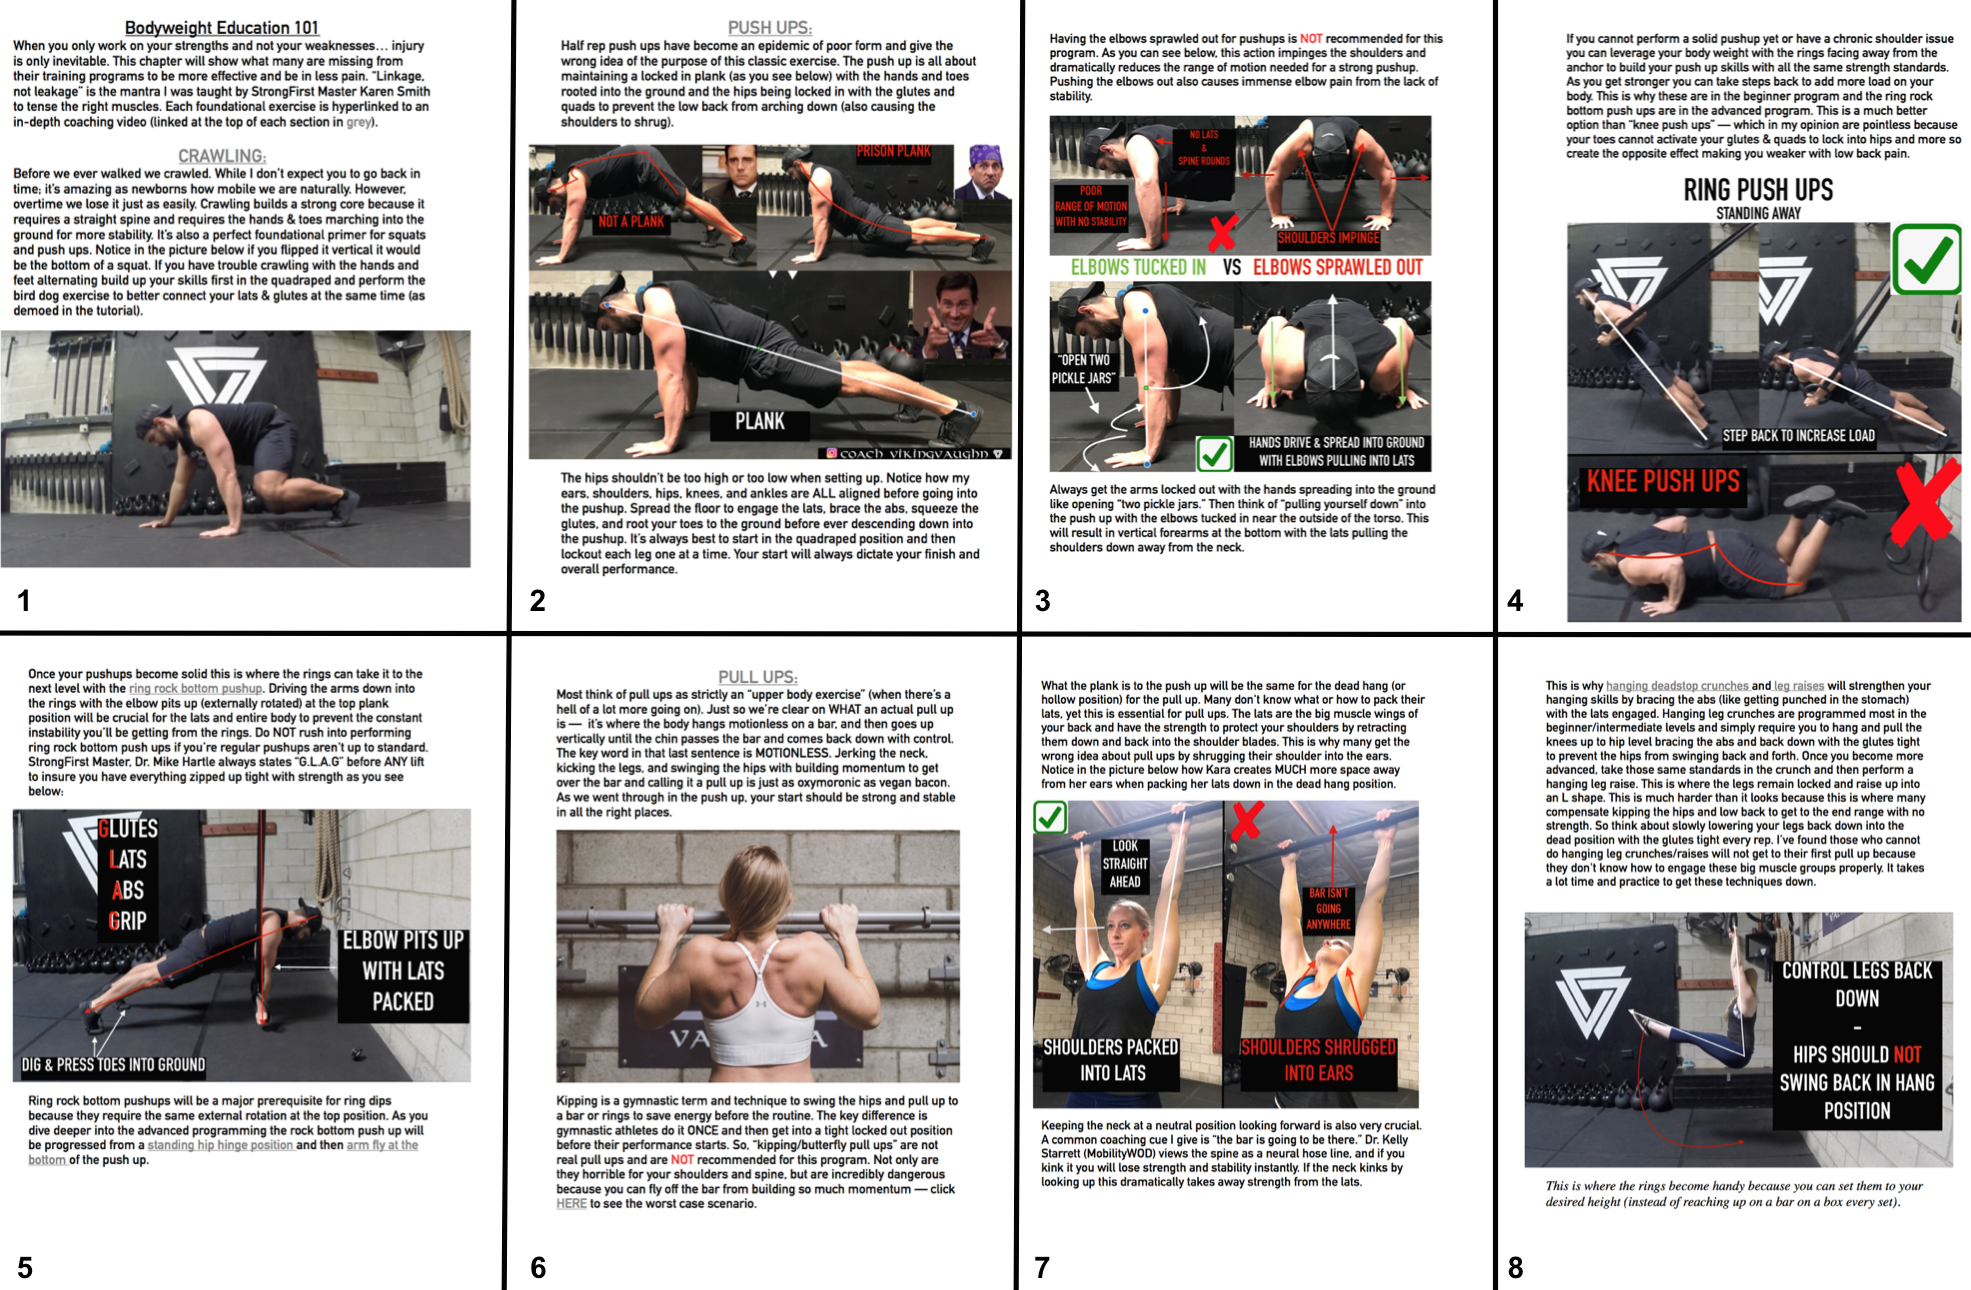 Ebooks comes with a full chapter on Bodyweight Education 101 with detailed images and hyperlinked video tutorials